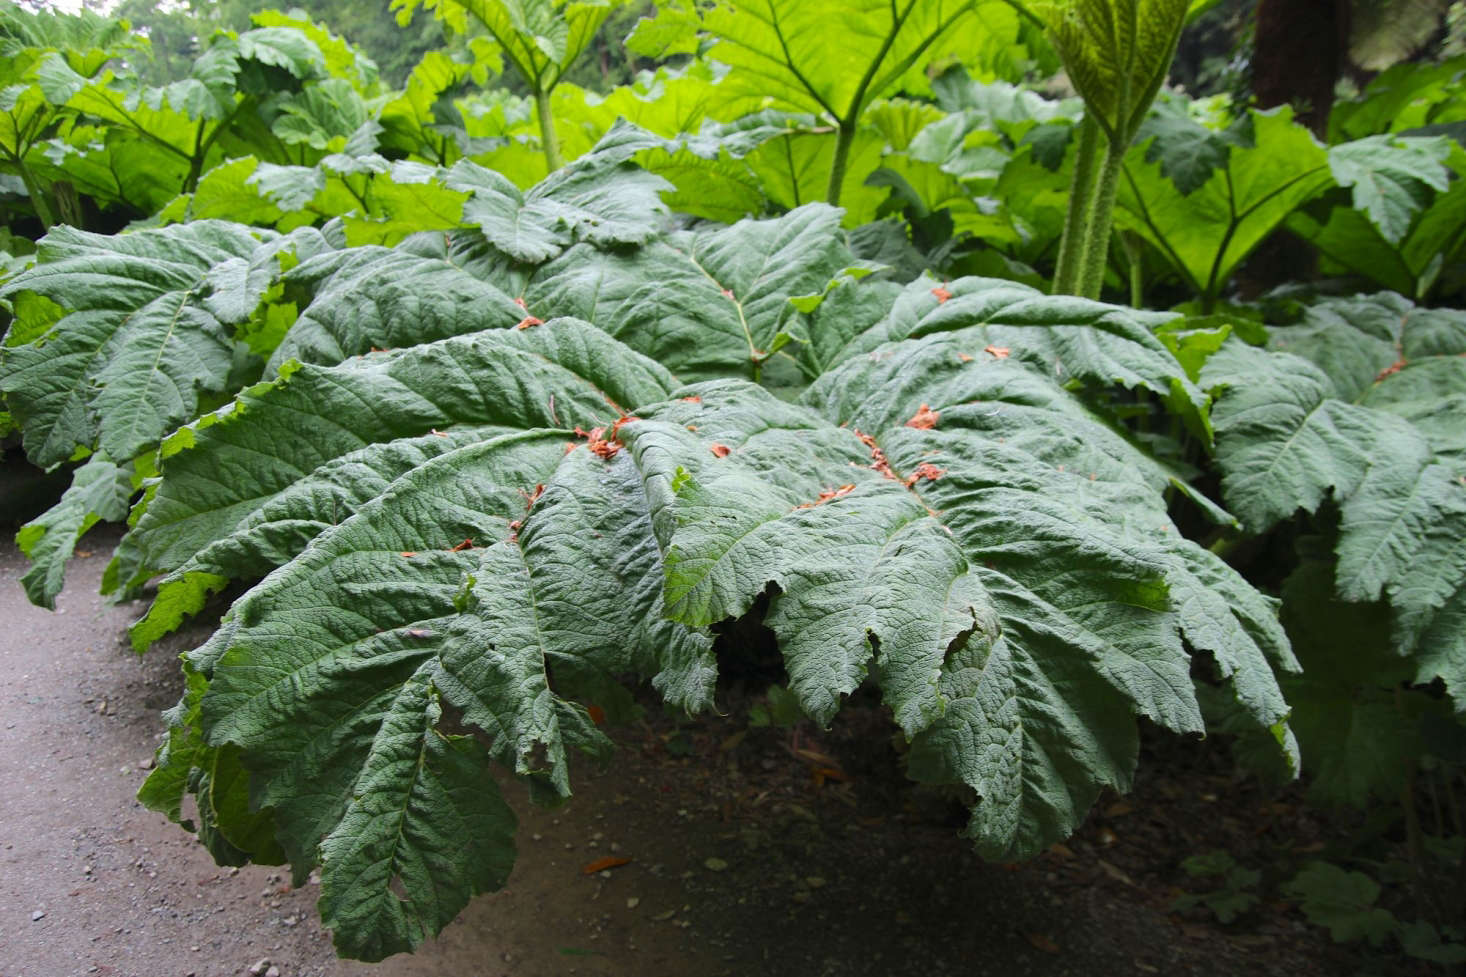 Gunnera in the garden. Photograph by Kathryn Yengel via Flickr.